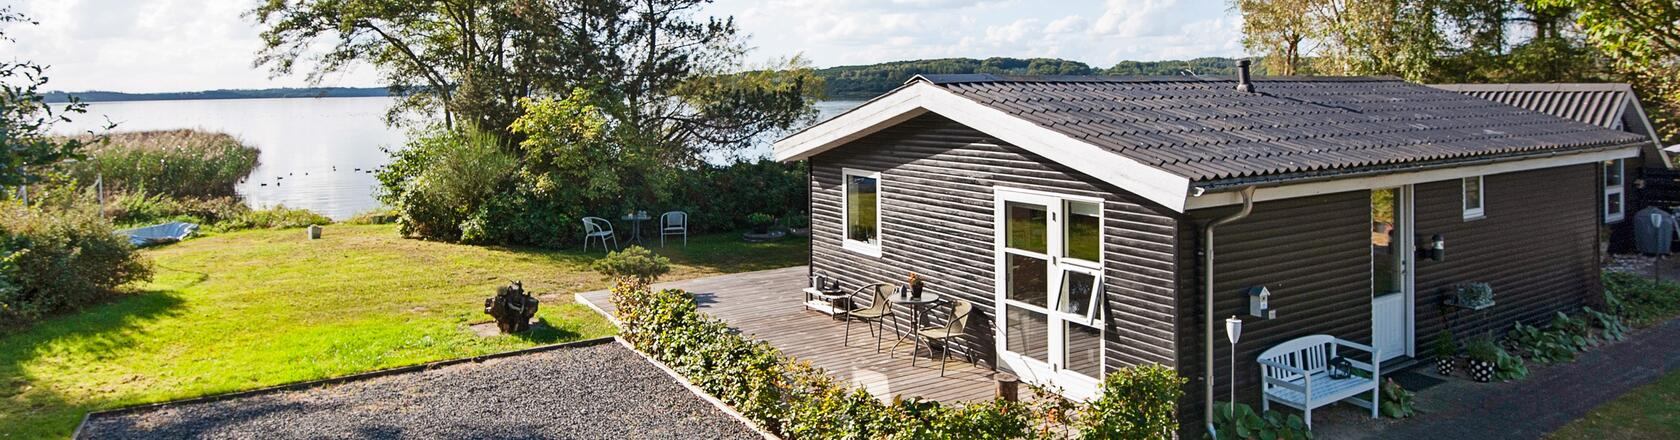 Sahl Hede in Denmark - Rent a holiday home  with DanCenter